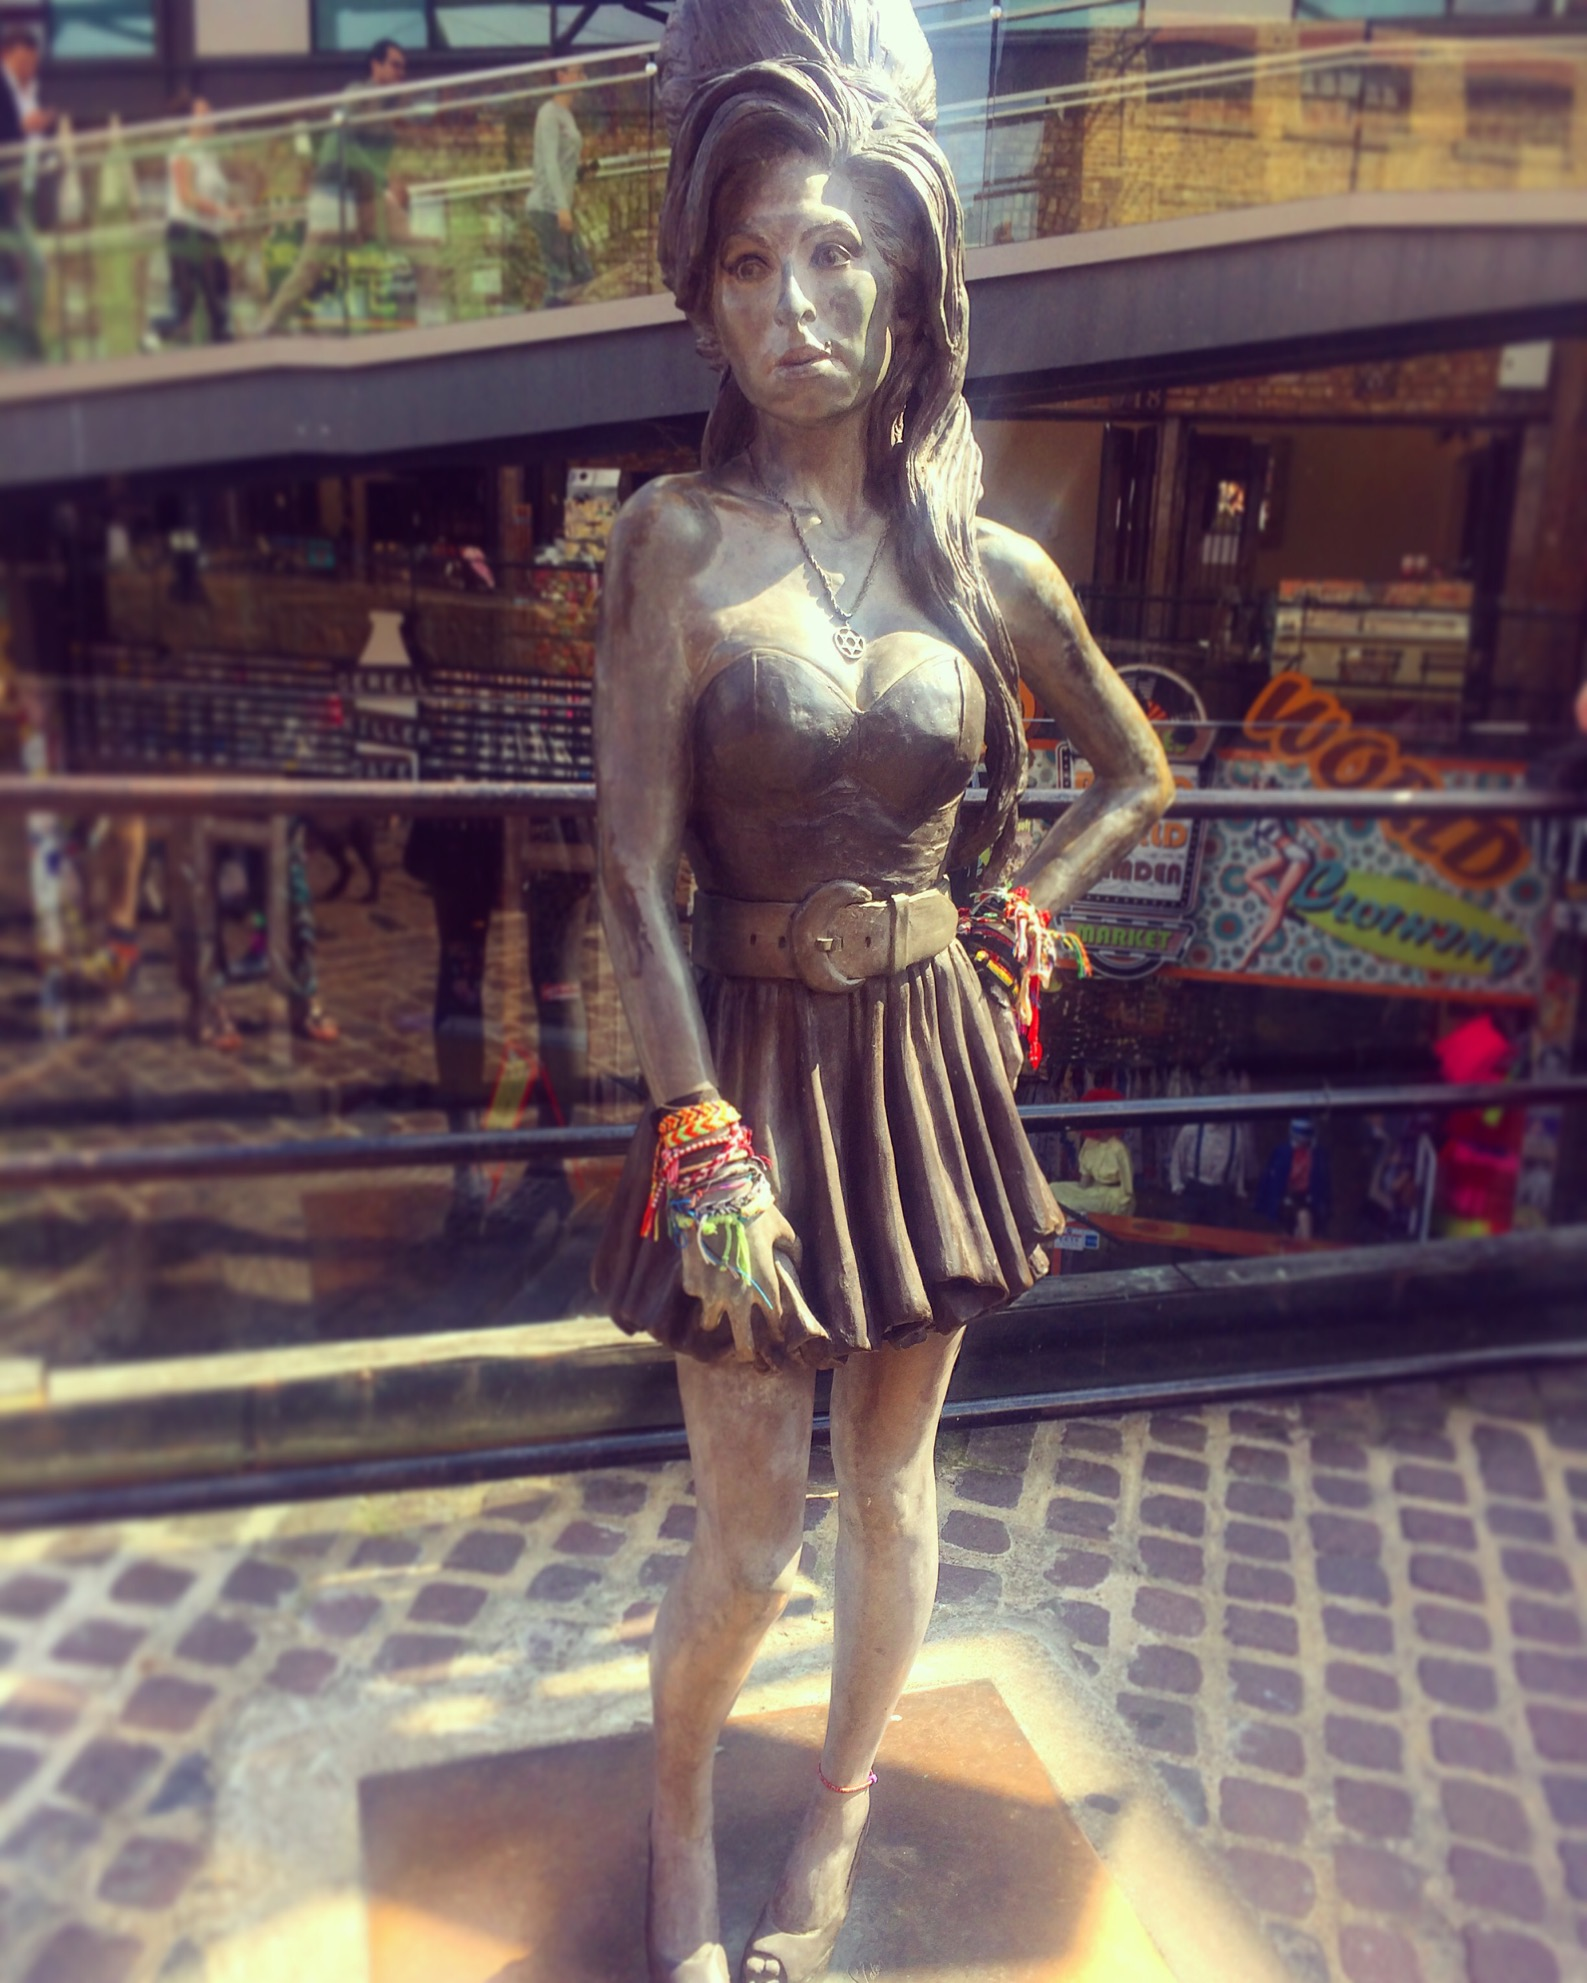 Amy Winehouse Statue / Courtesy of Angie Quinn